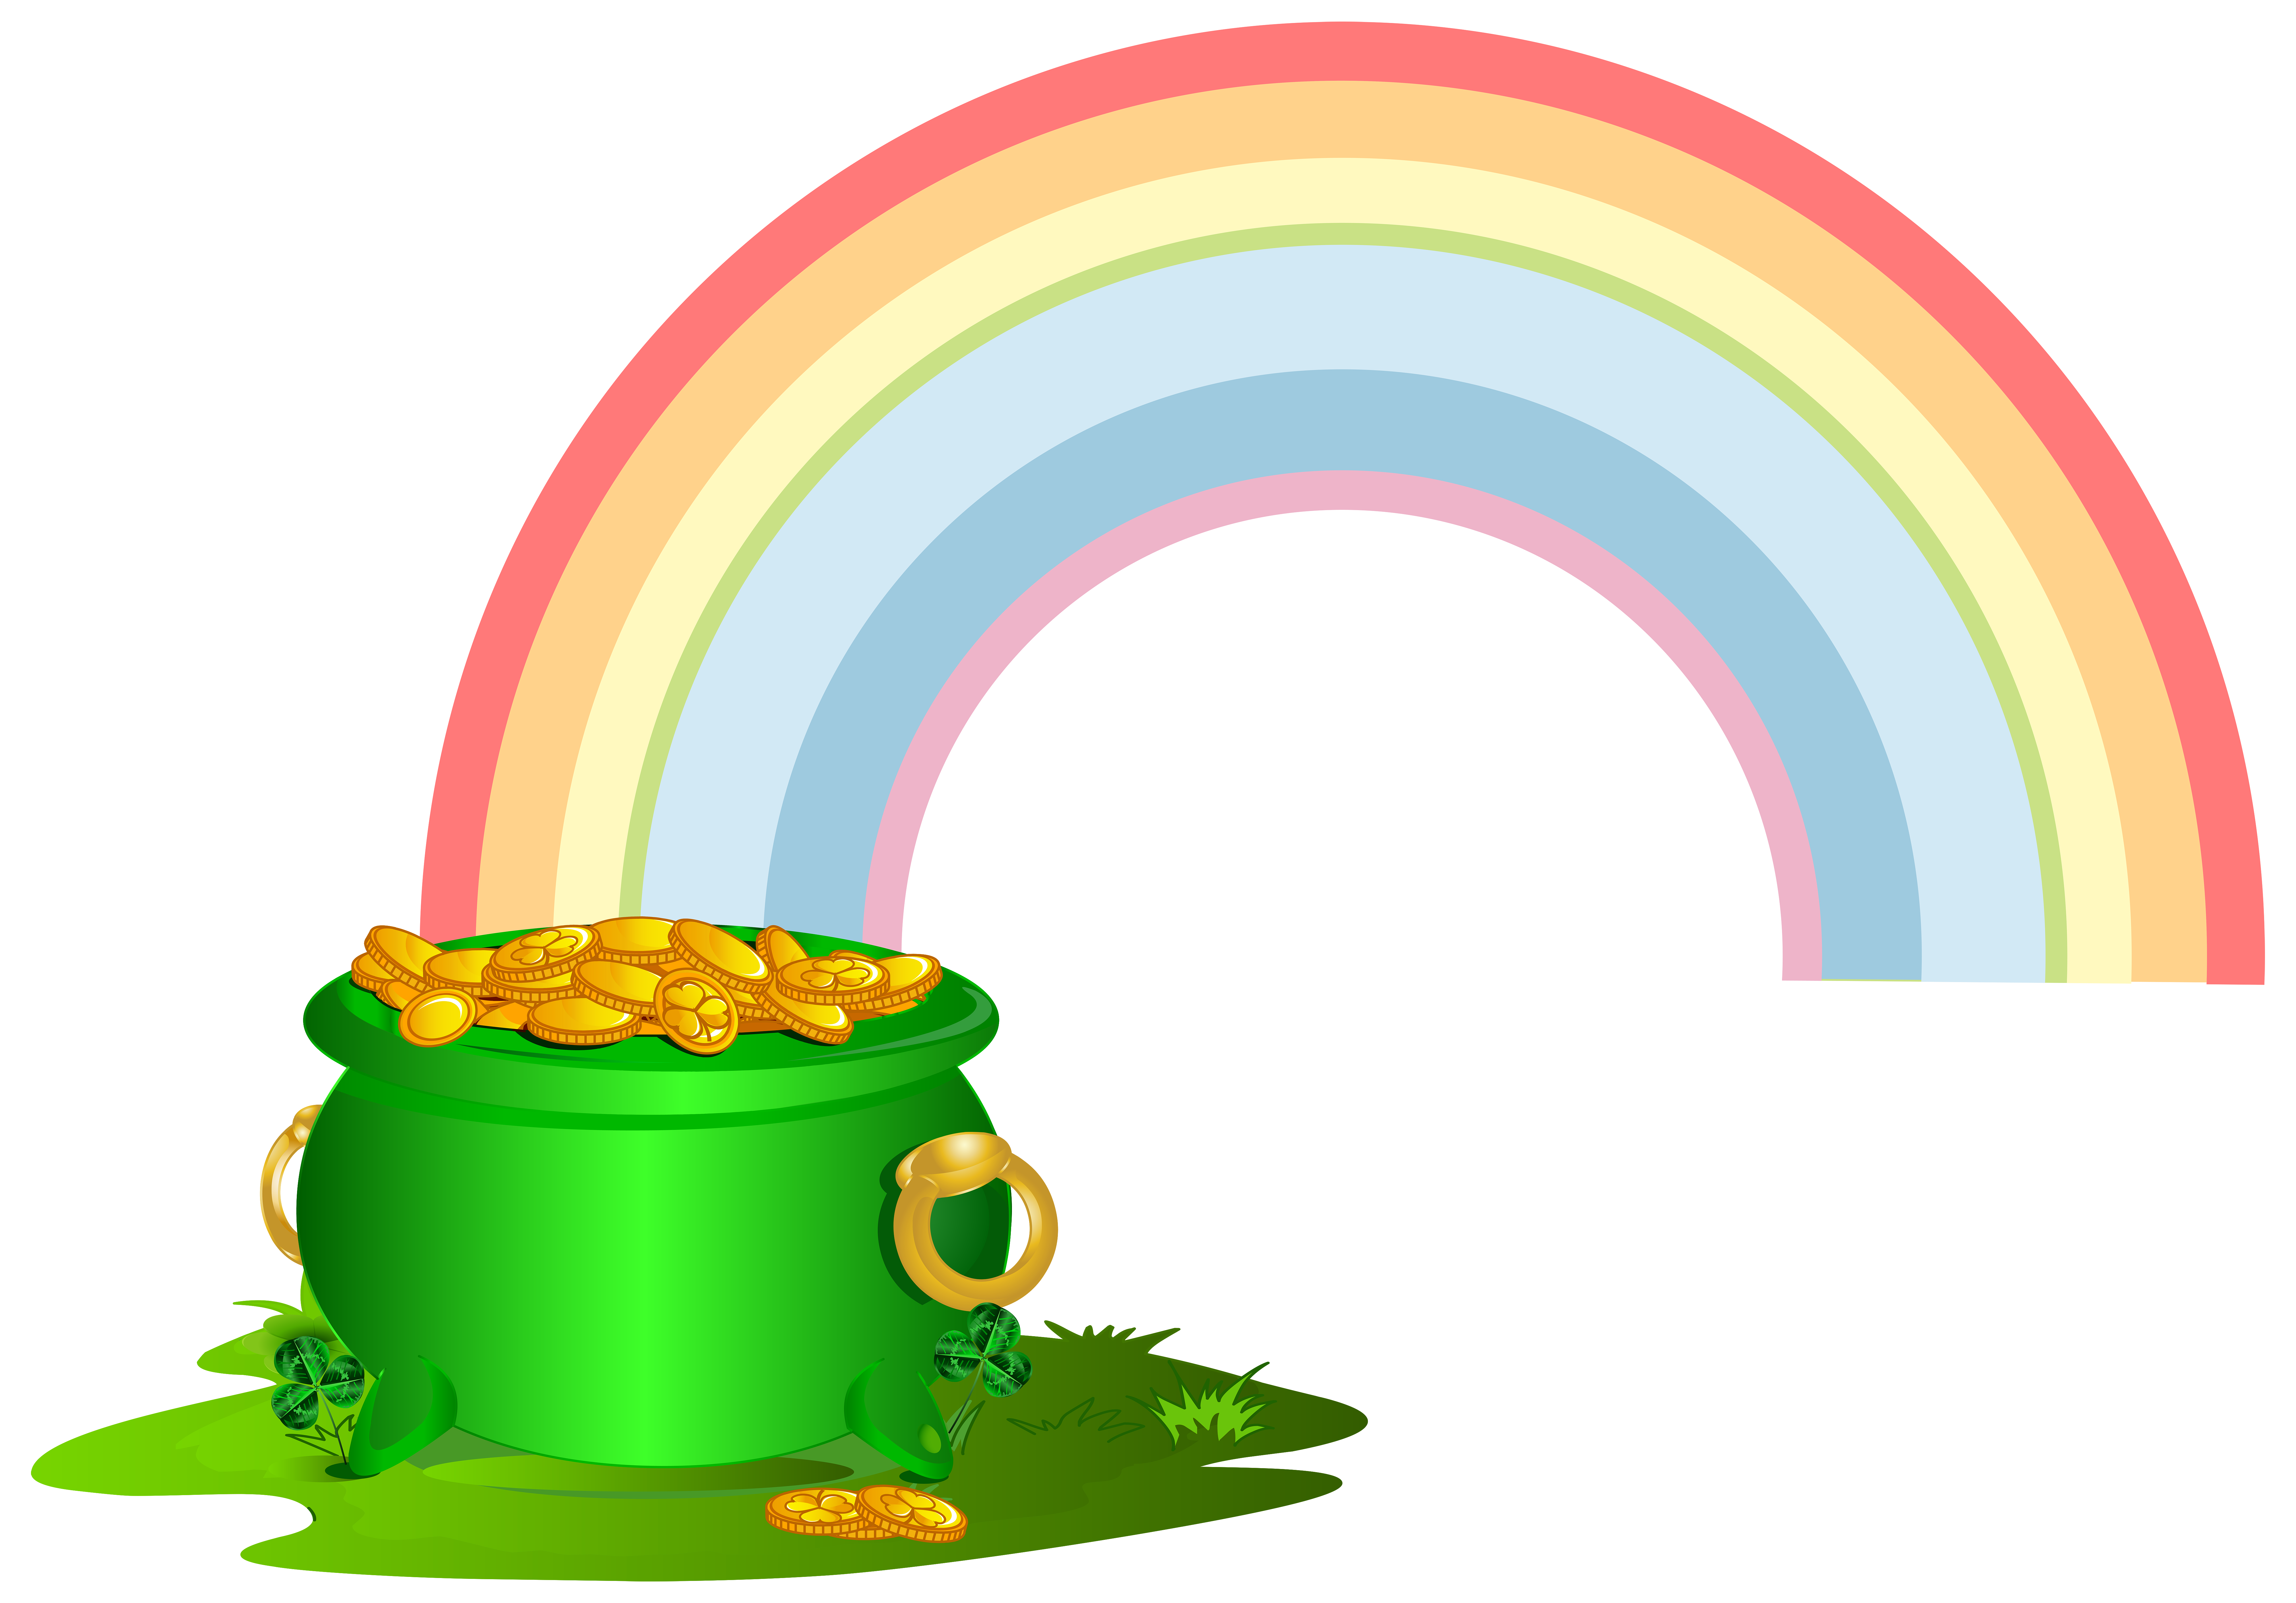 Pot of gold rainbow png. Green with clip art